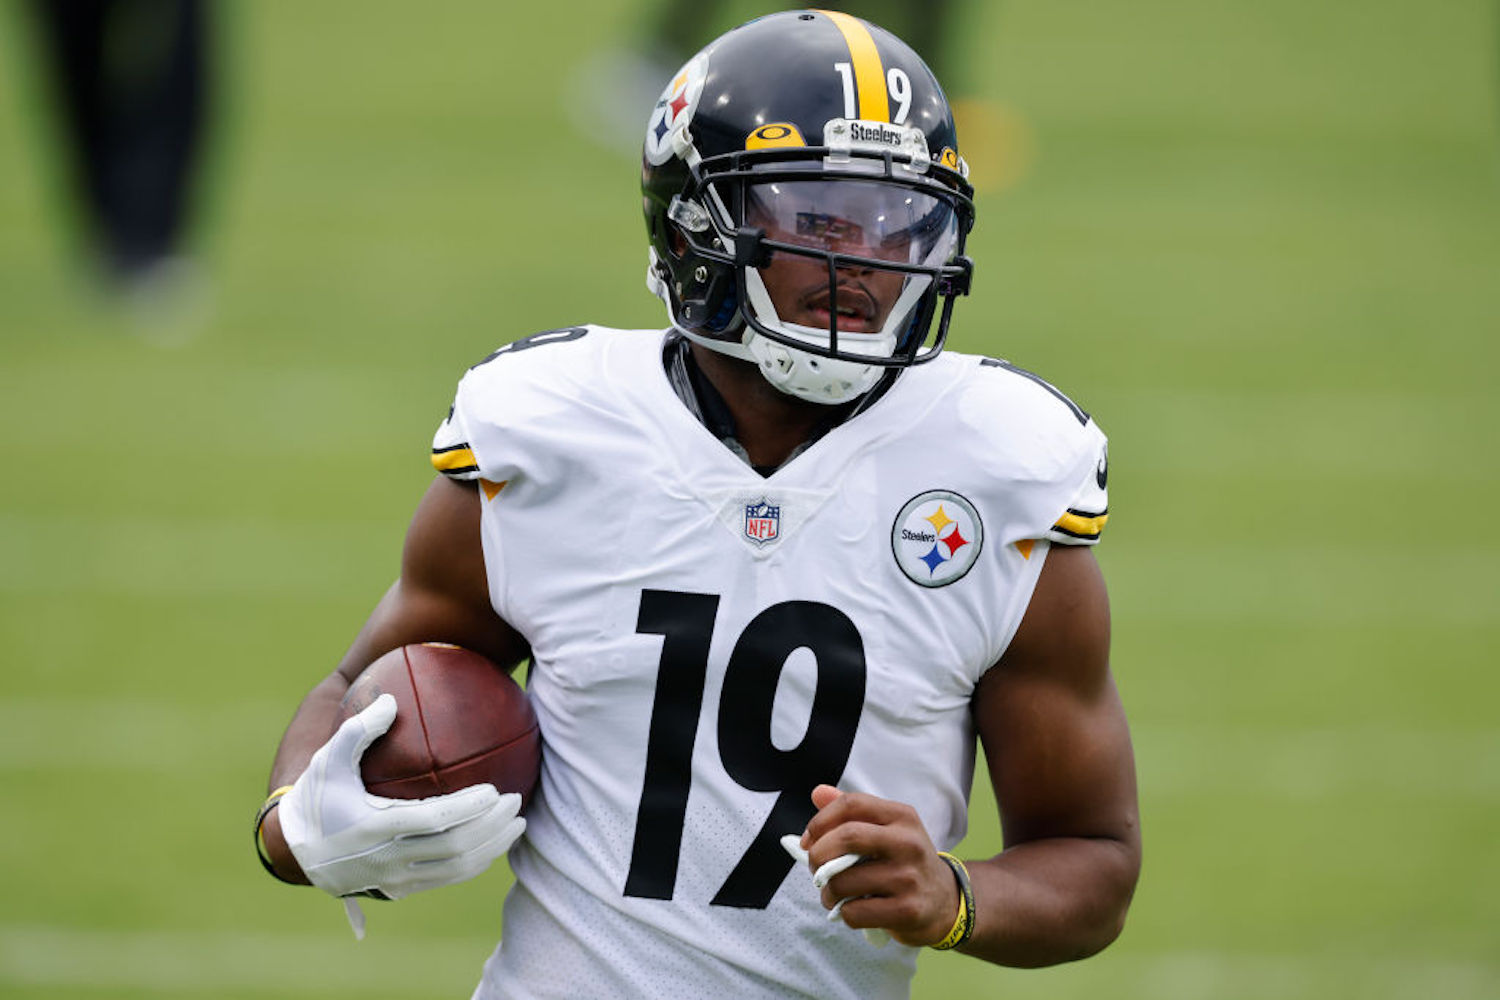 JuJu Smith-Schuster stepped on a wayward flag and tweaked his foot Sunday in one of the most unlucky injuries of the NFL season.